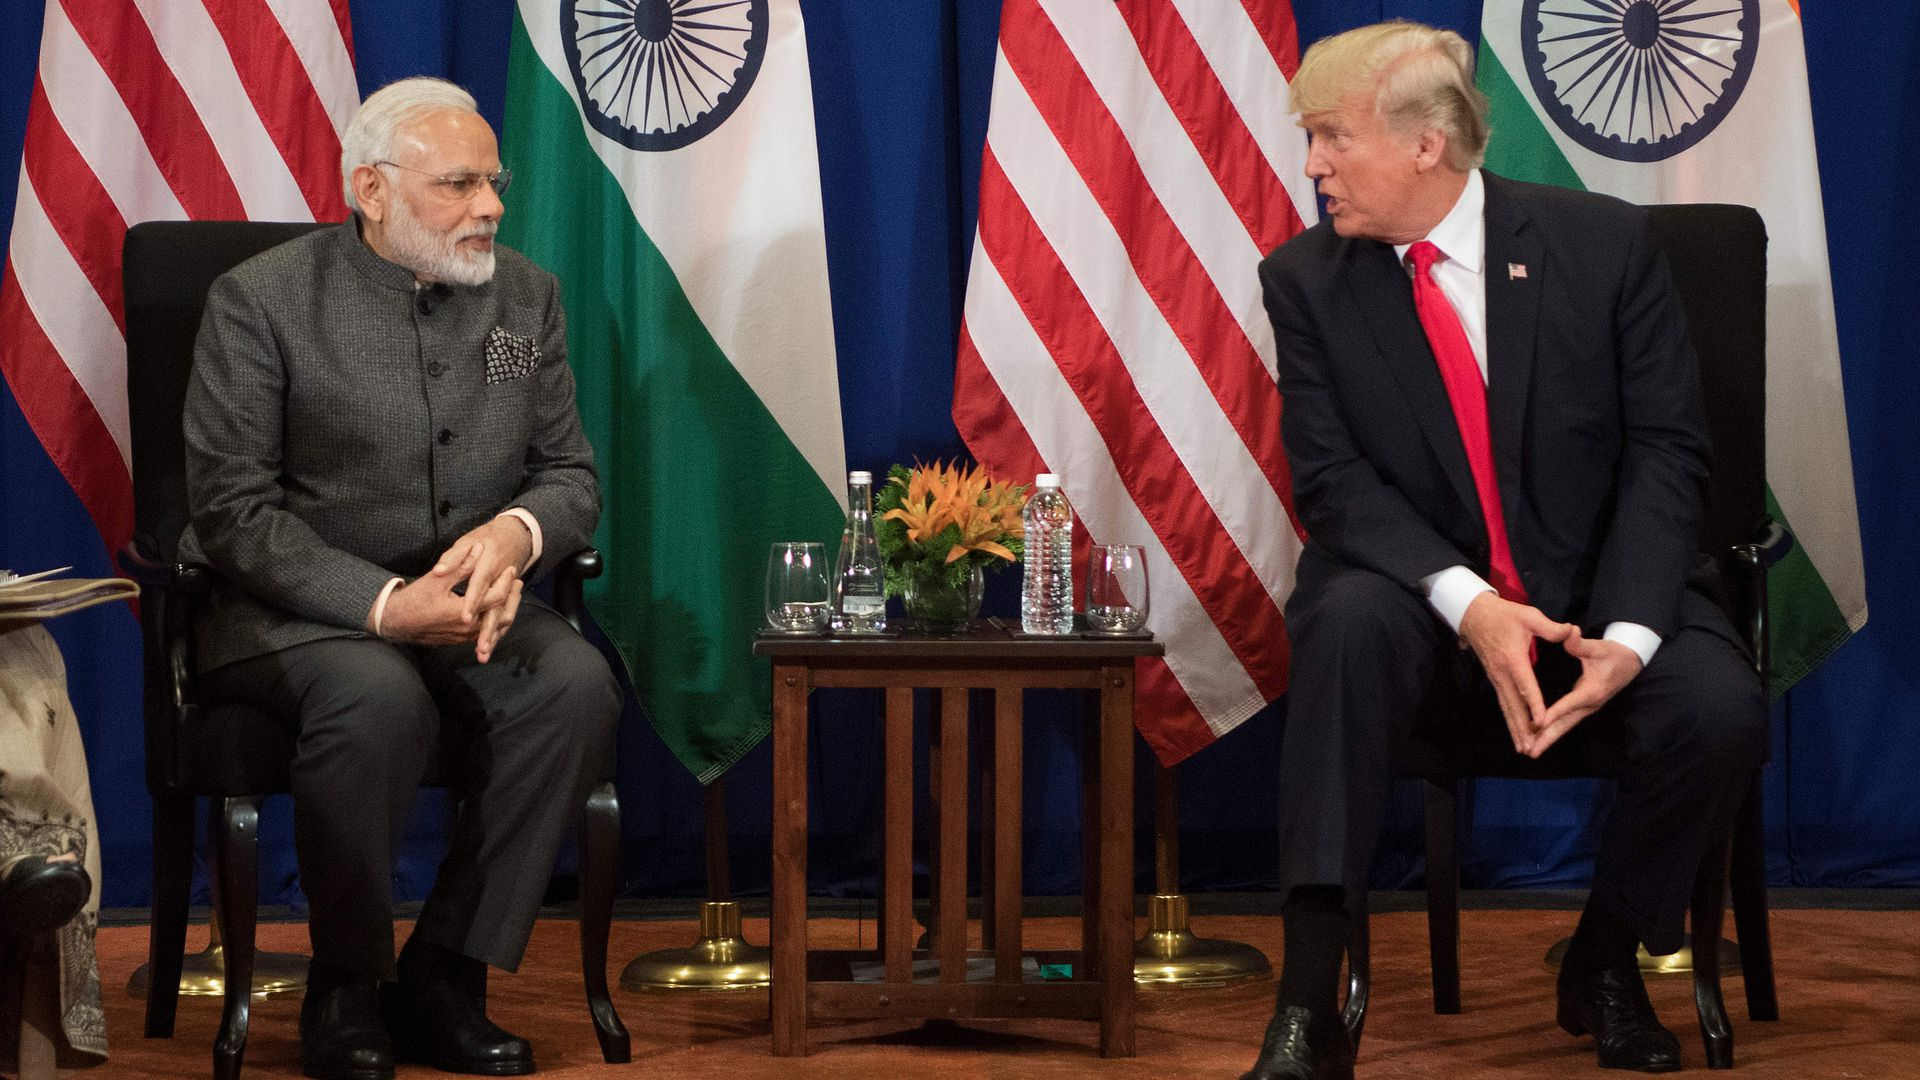 President Trump speaks with Indian Prime Minister Modi during a bilateral meeting on the sideline of the 31st Association of Southeast Asian Nations (ASEAN) Summit in Manila on November 13, 2017.